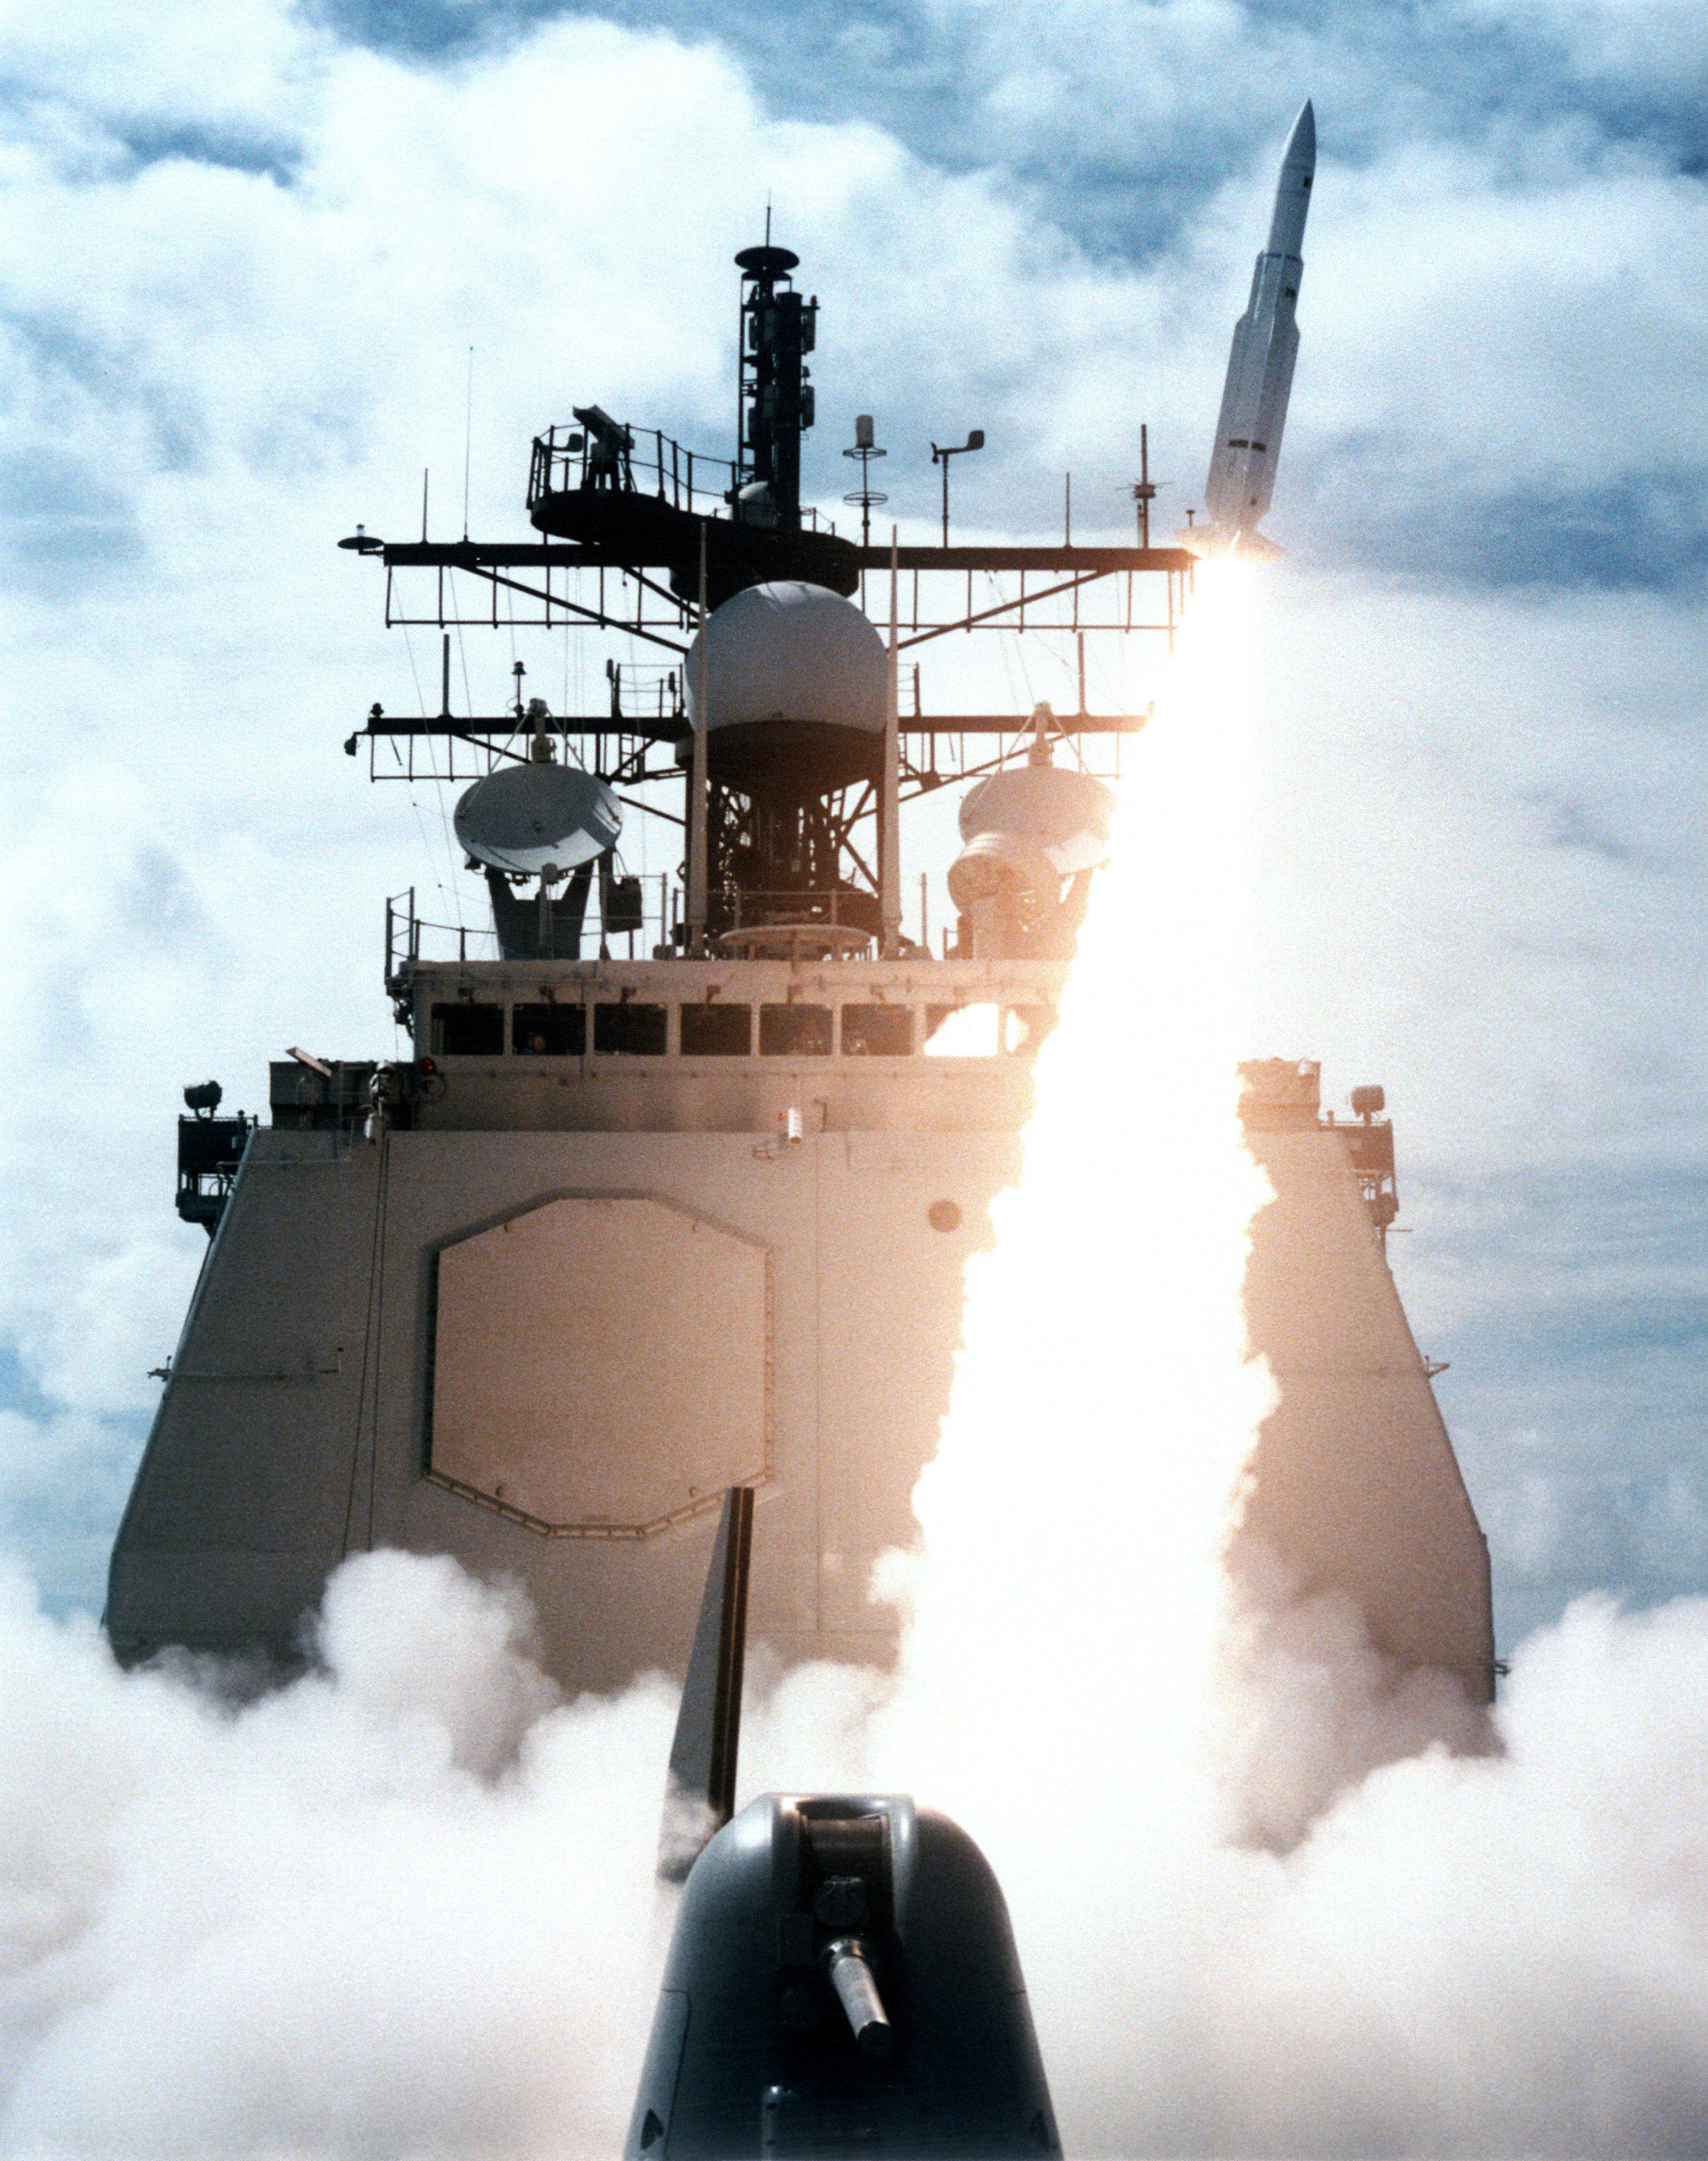 US Navy (USN) Ticonderoga Class Cruiser USS VINCENNES (CG 49) launching a Standard Missile-2 (SM-2) Medium Range (MR) from its deck. File photo